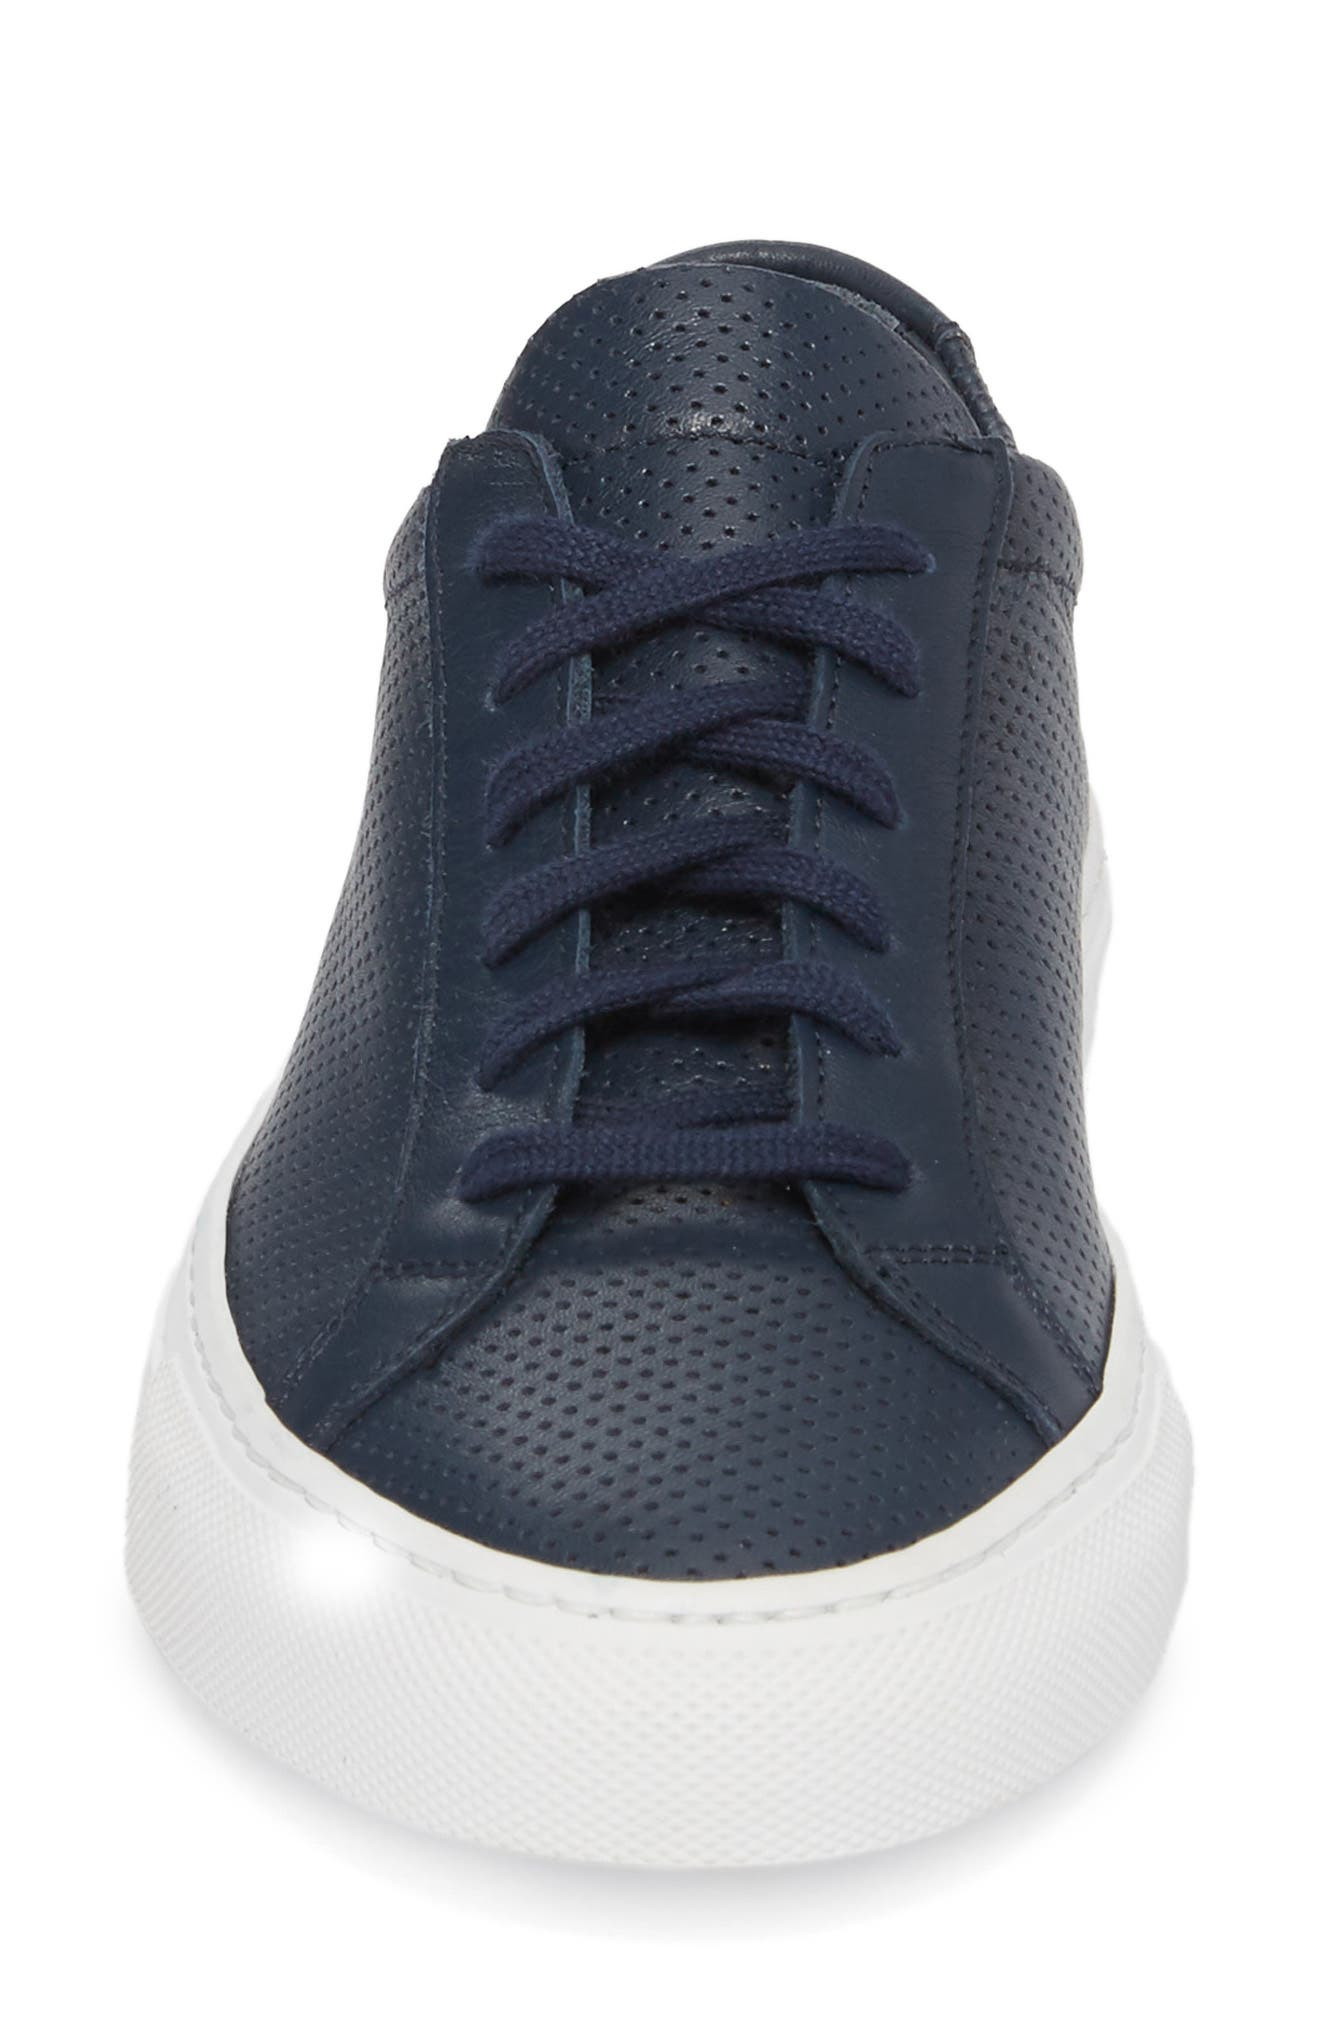 Original Achilles Perforated Low Sneaker,                             Alternate thumbnail 4, color,                             Navy